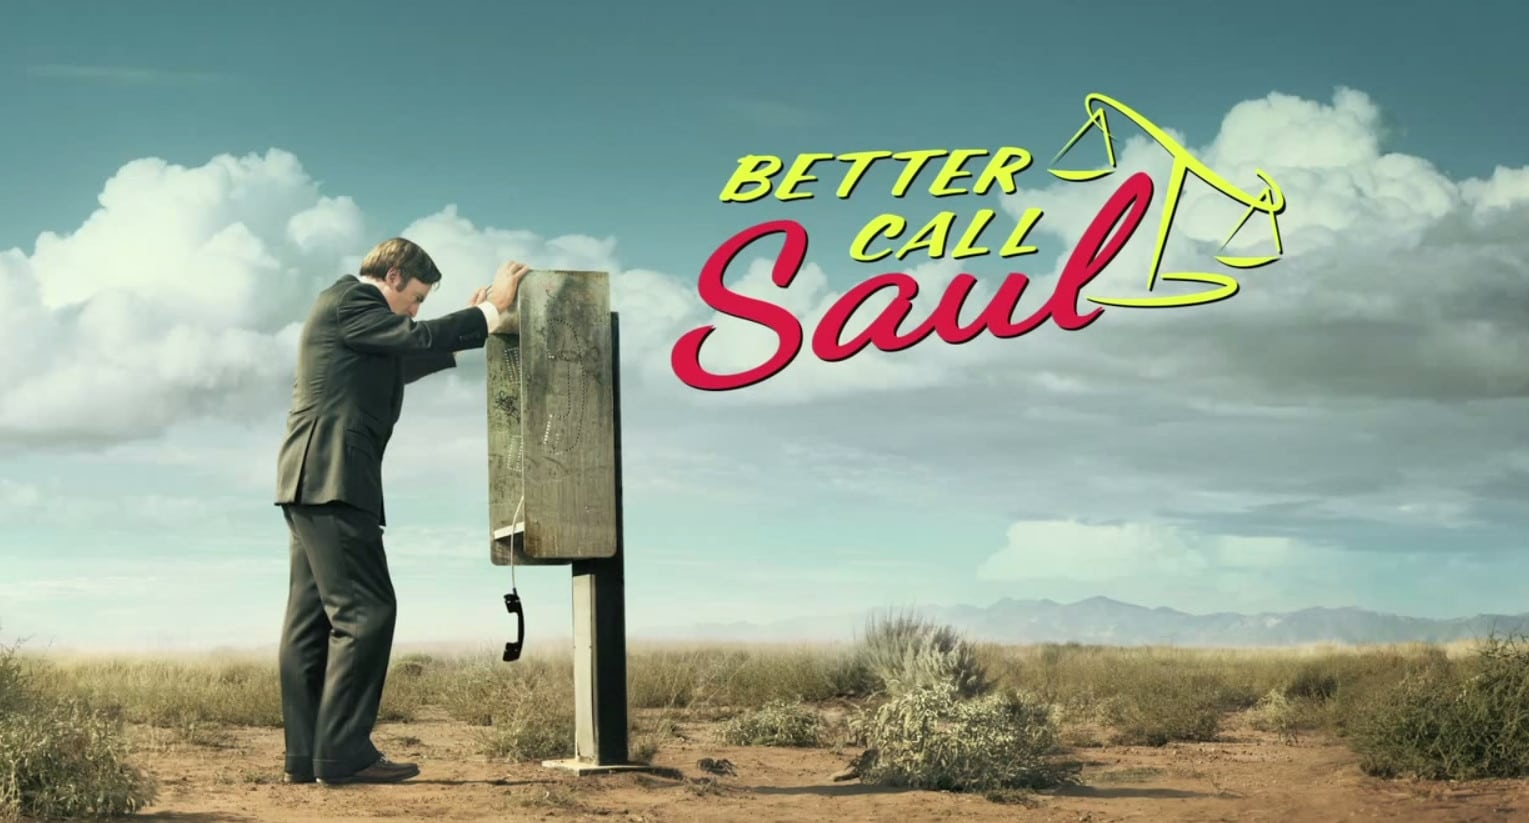 مسلسل Better Call Saul